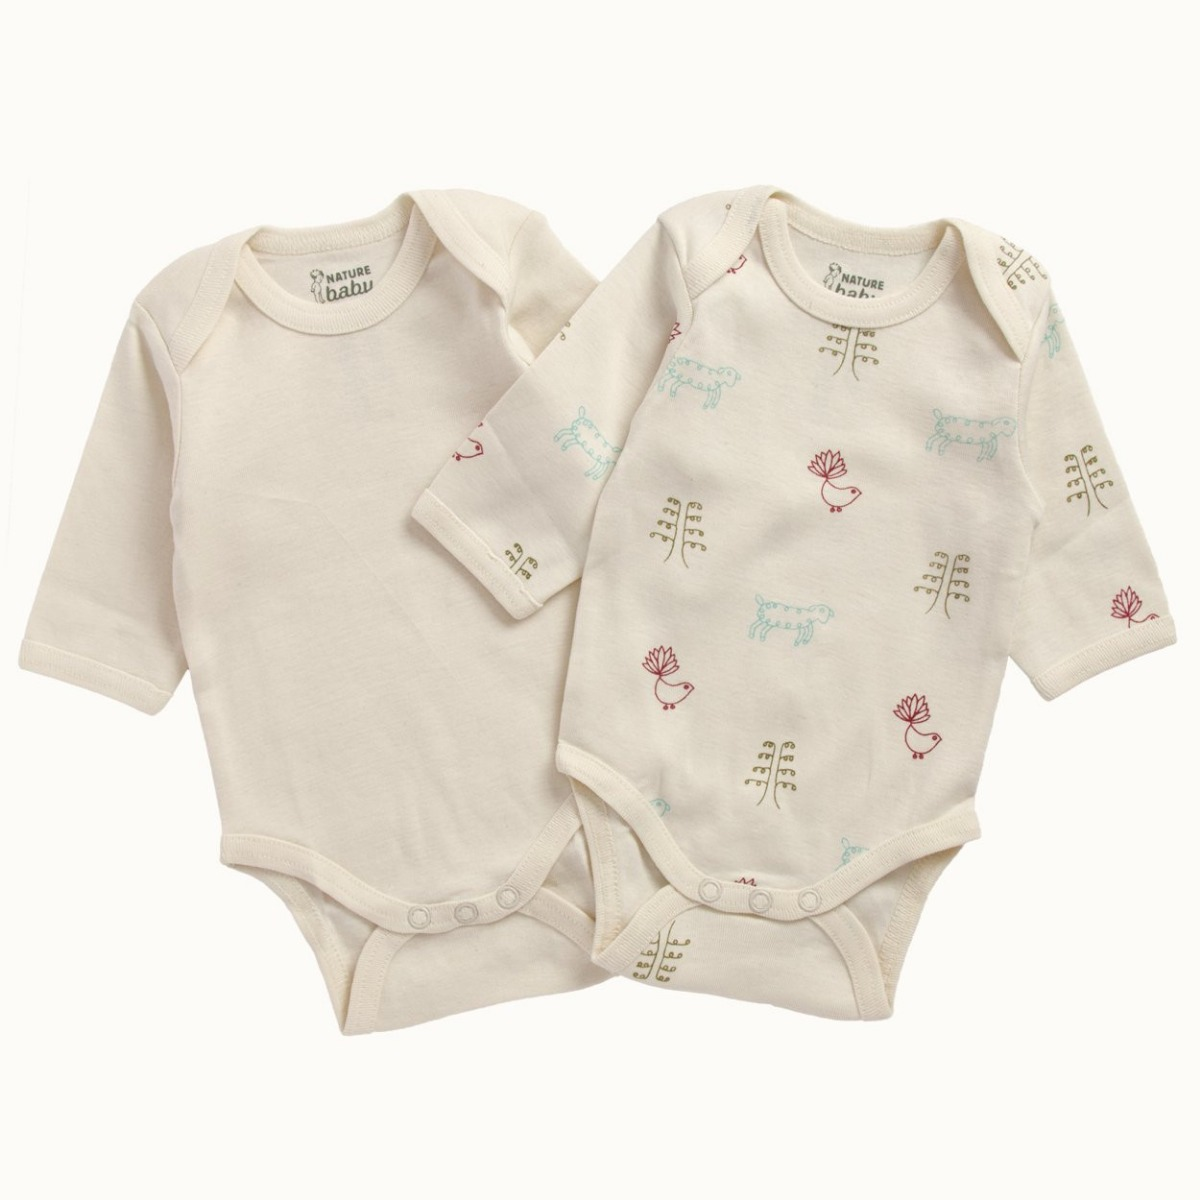 Nature Baby Organic Cotton 2 Pack Bodysuit 3-6M